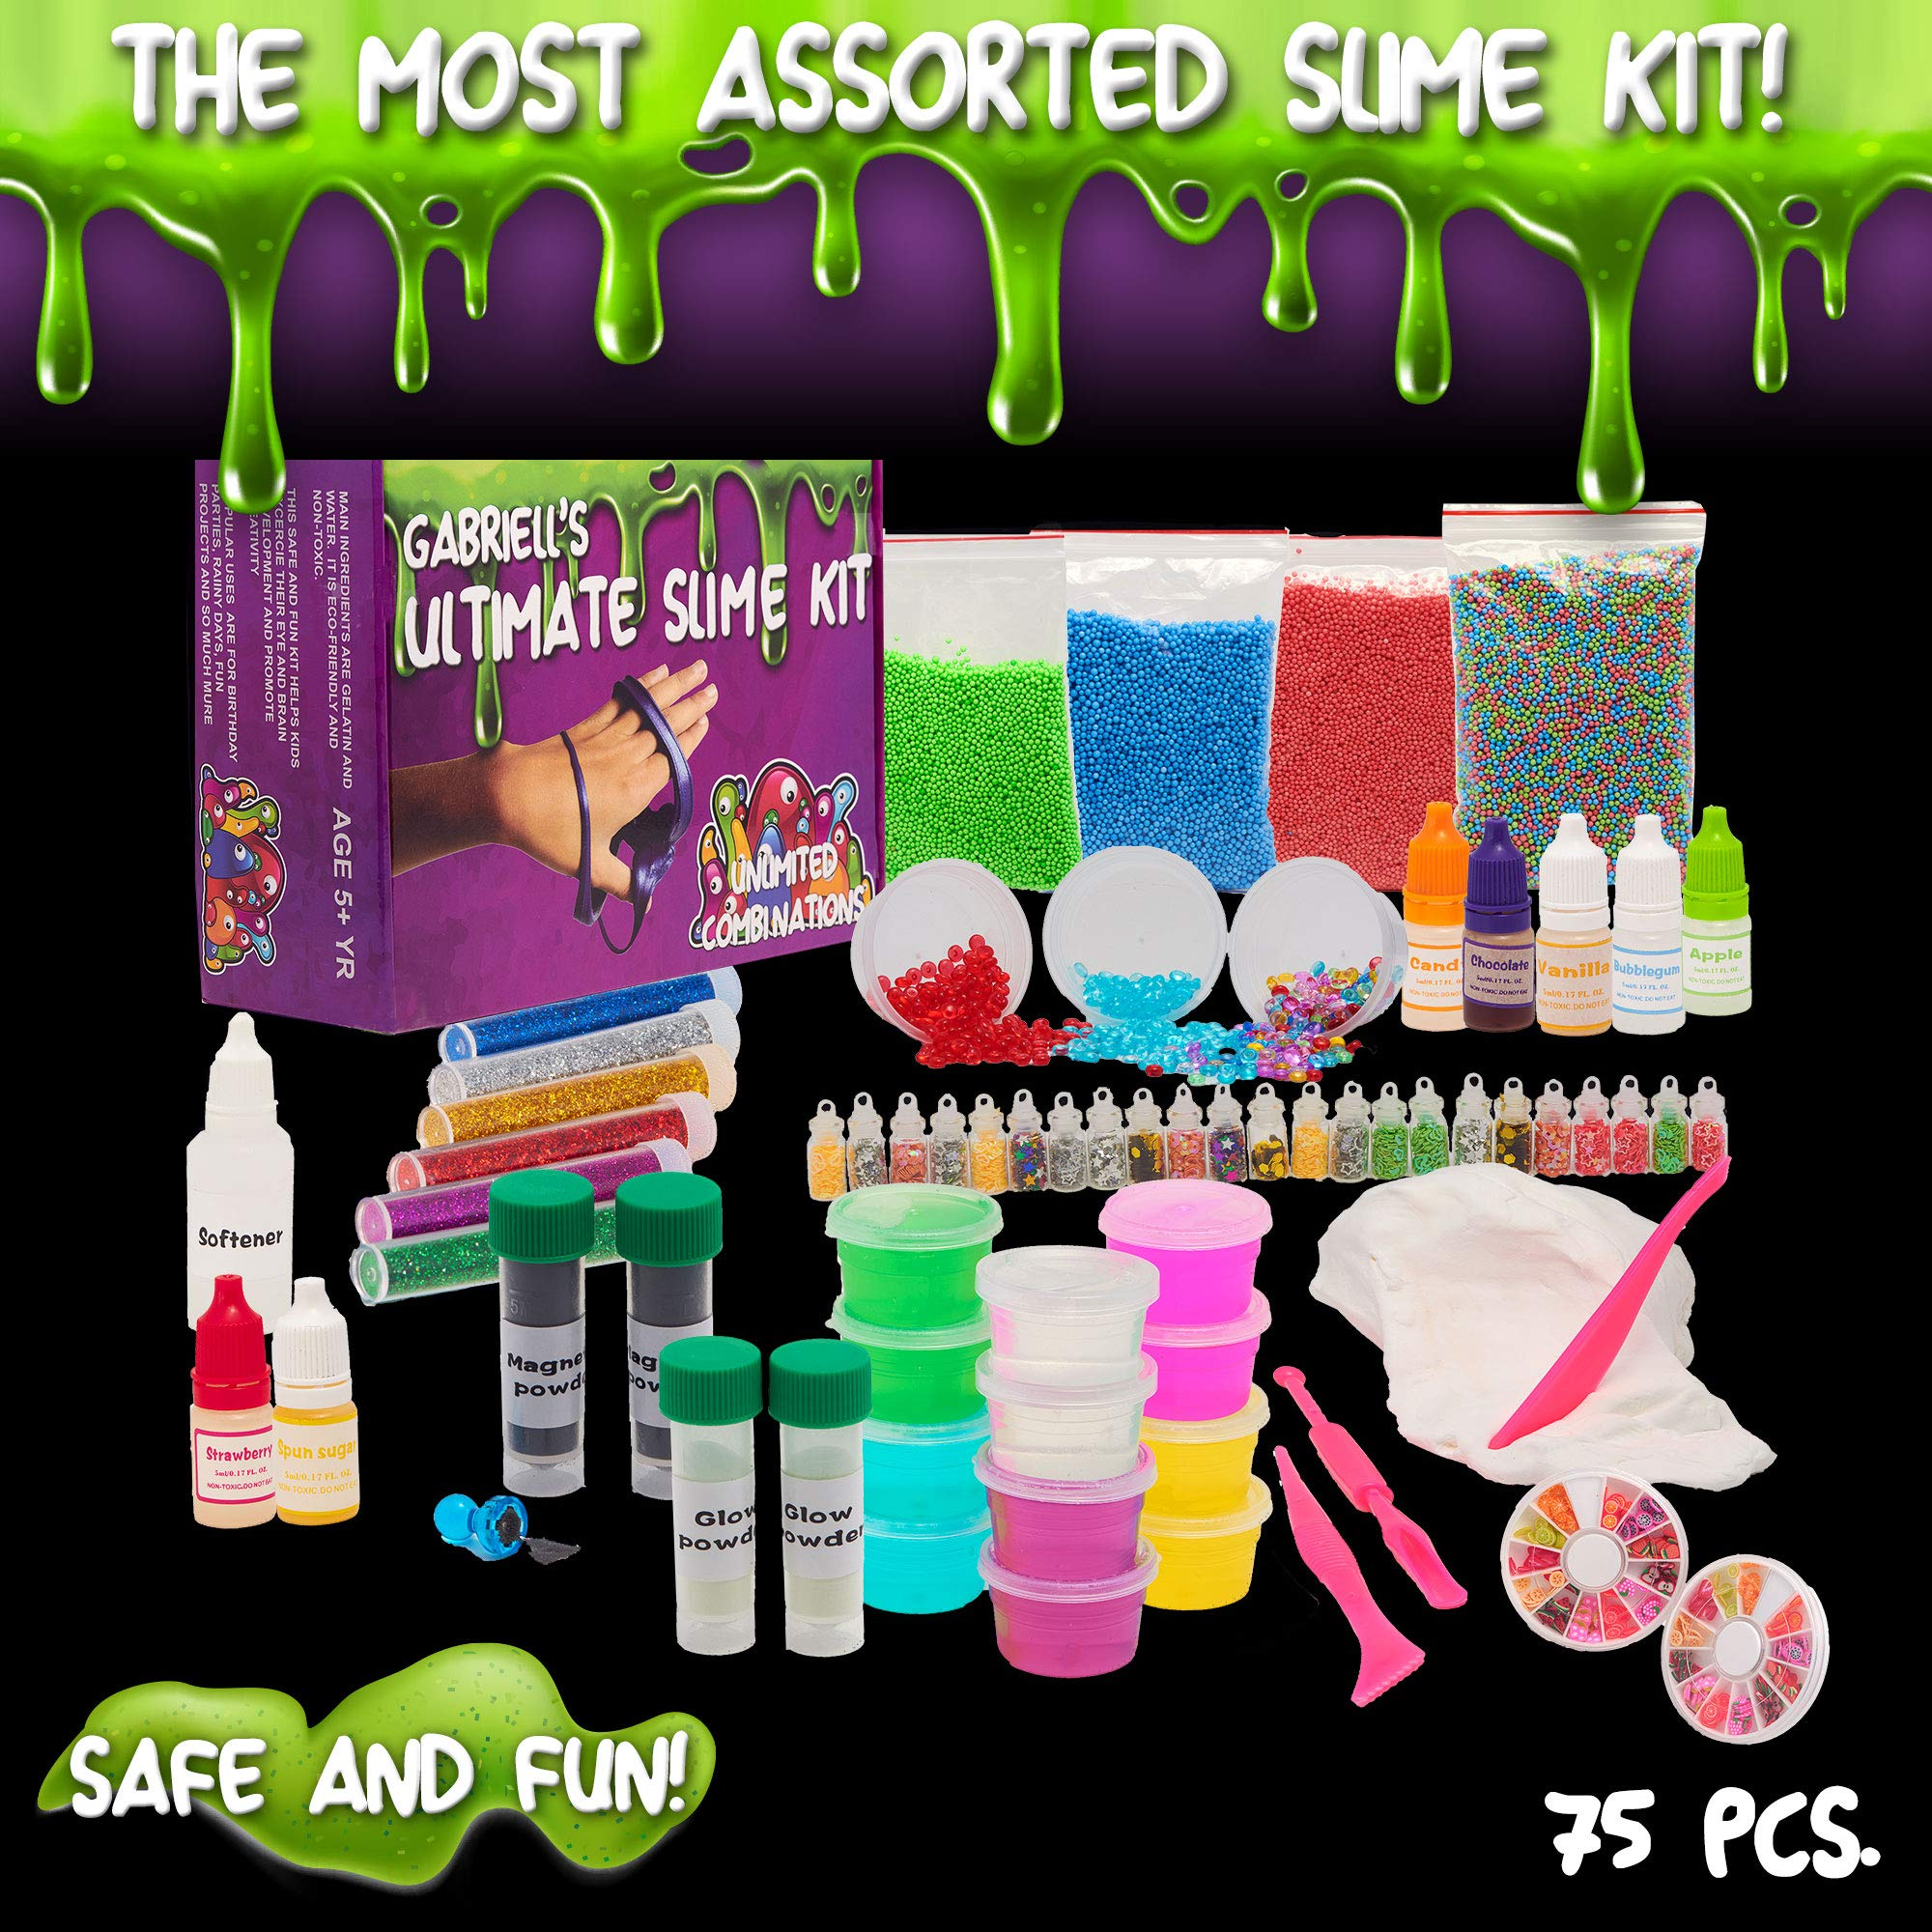 Ultimate Slime Kit Supplies with Magnet Powder,Glow in the dark Powder, 7 Different scents and over 75 different slime accessories by Gabriells